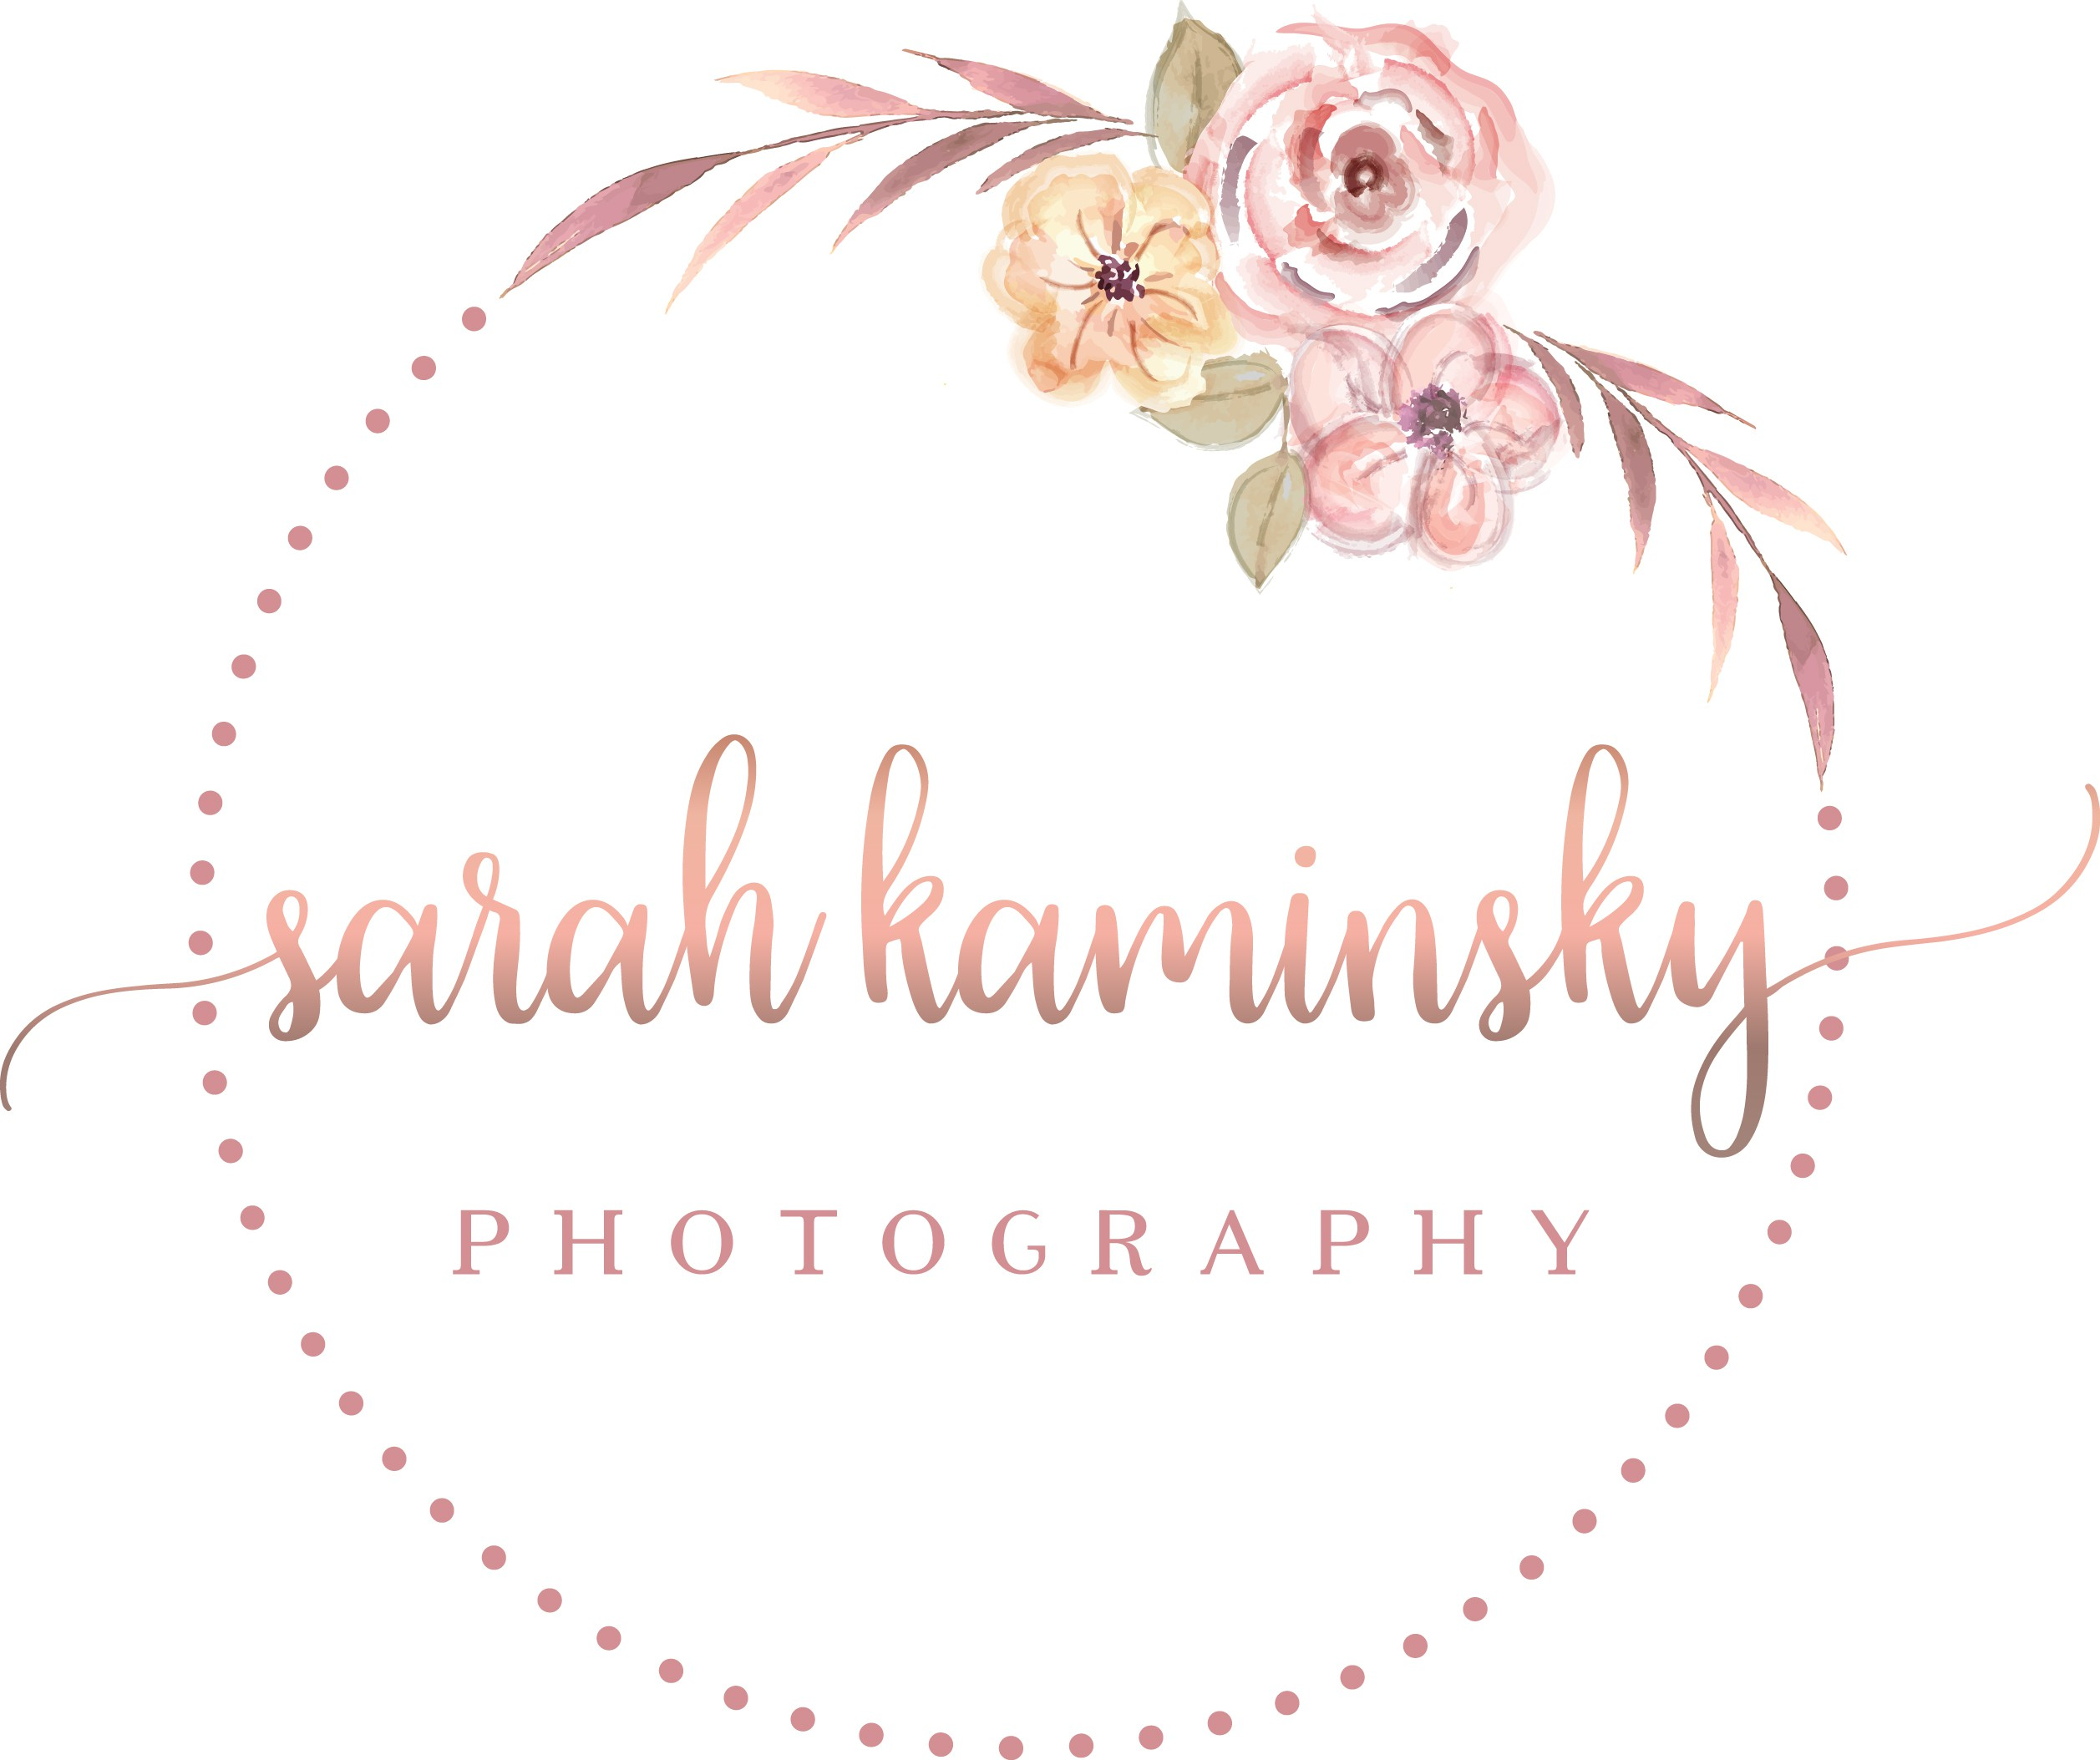 Help me rebrand to properly represent my luxury business!